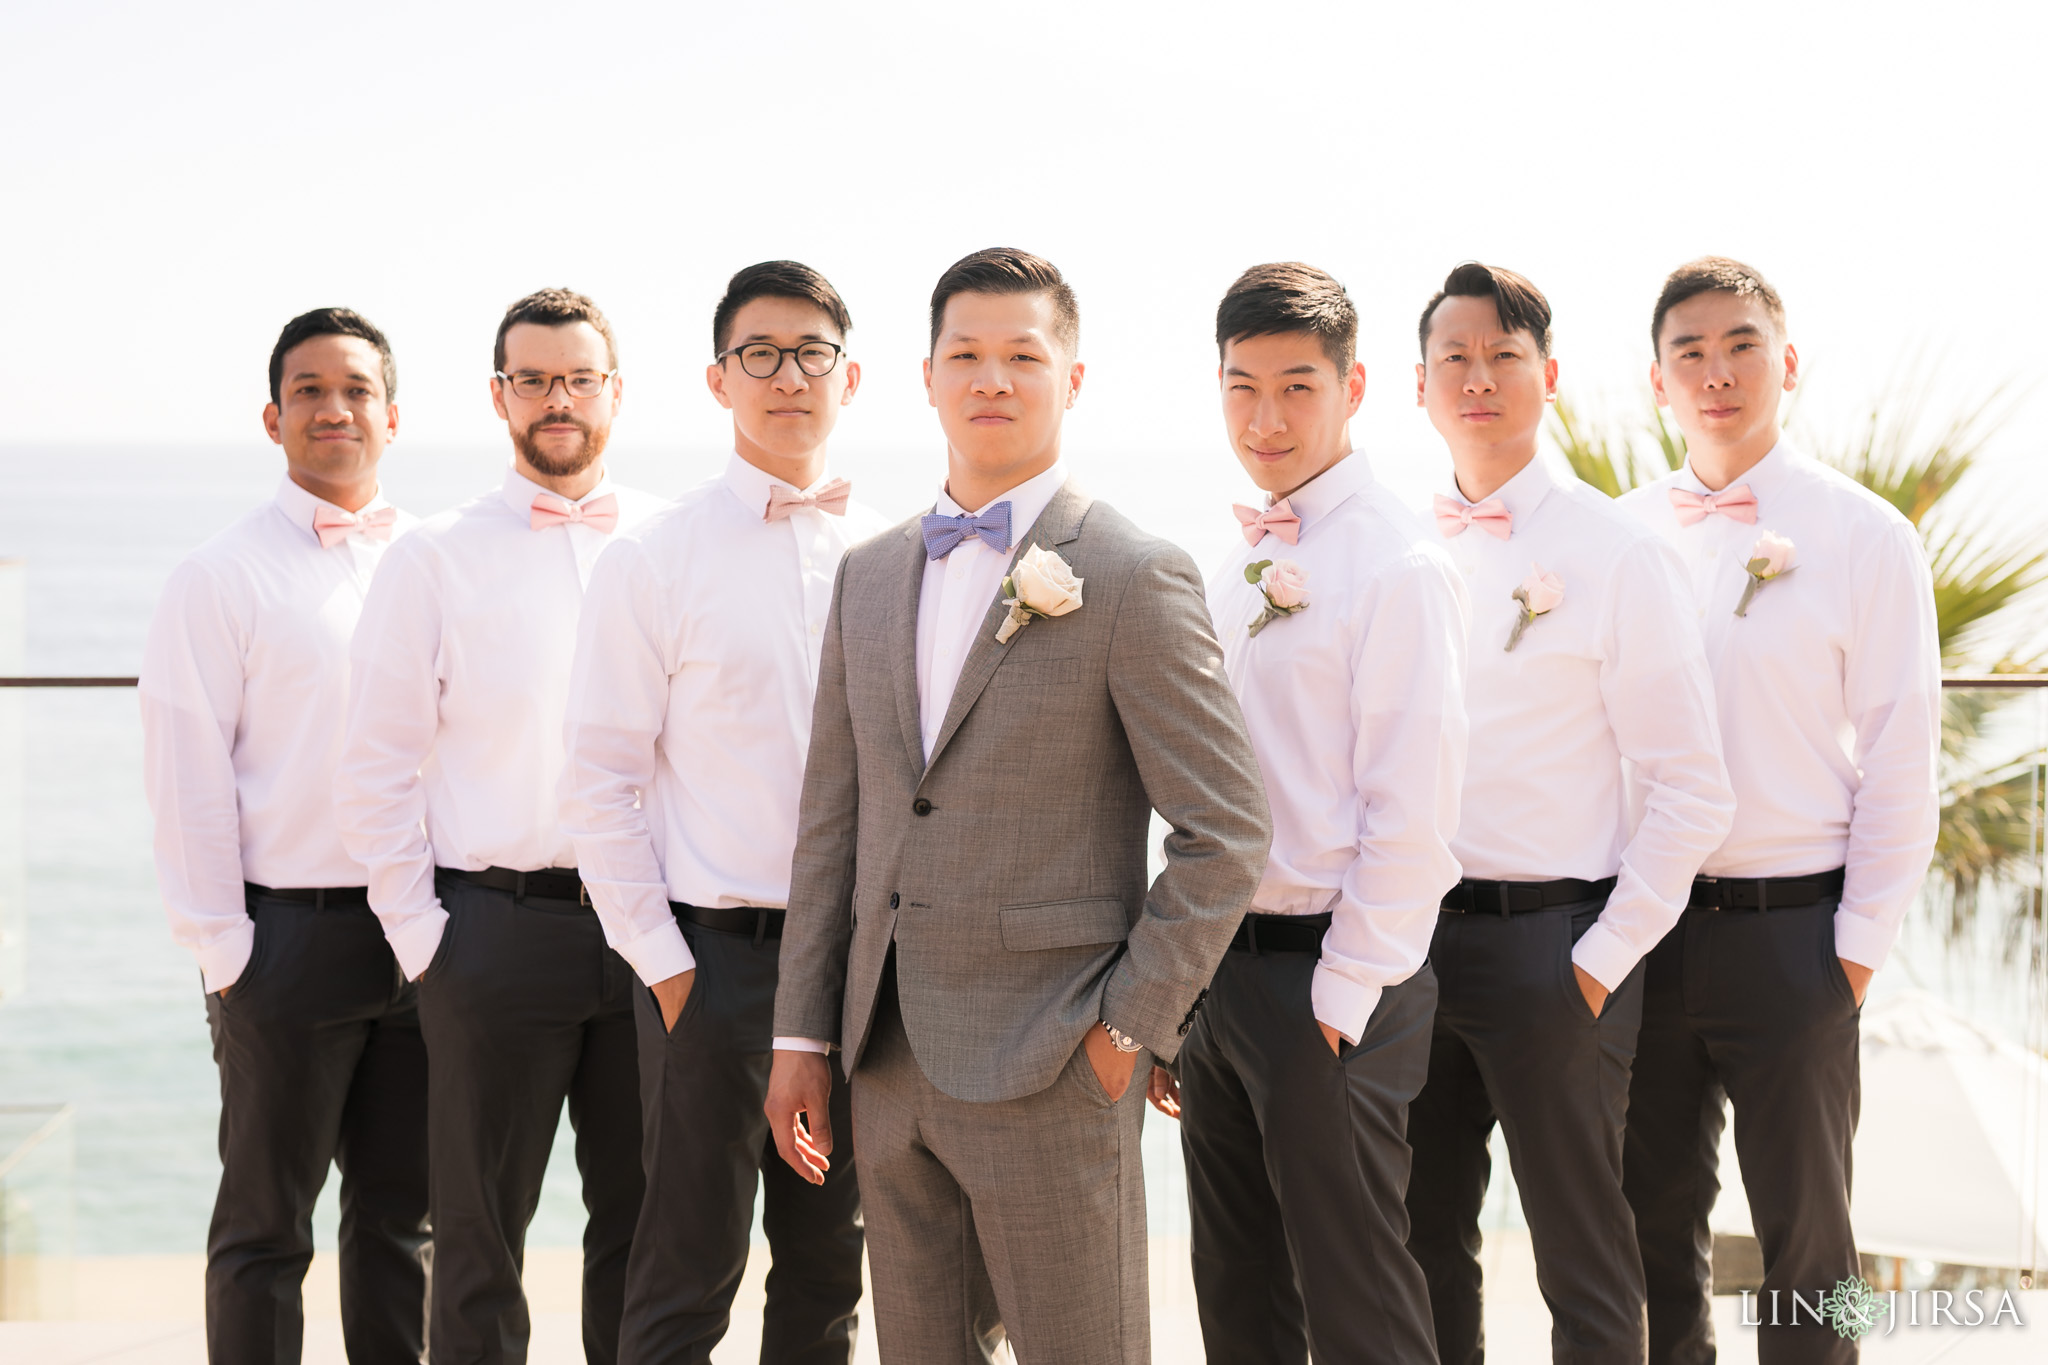 009 surf and sand resort laguna beach wedding photography